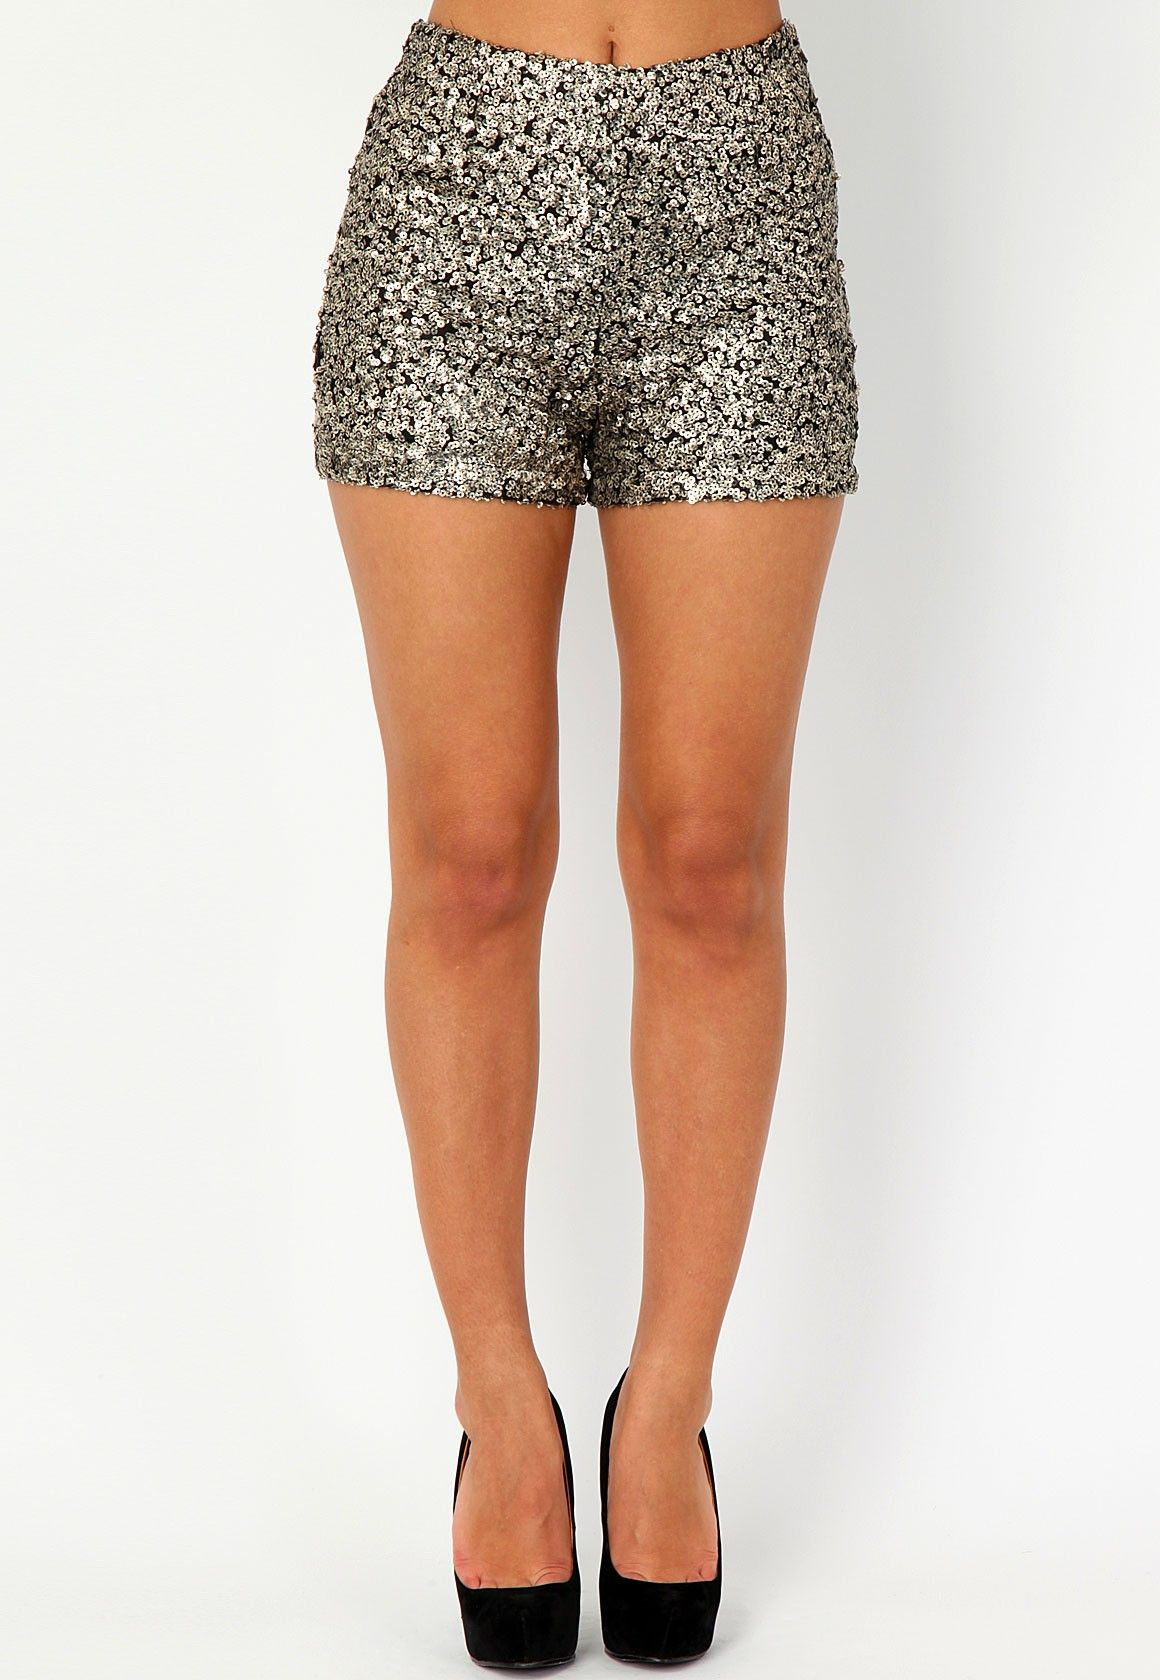 d80268a1 Korine High Waisted Sequin Shorts   Stylin in 2019   Fashion pants ...